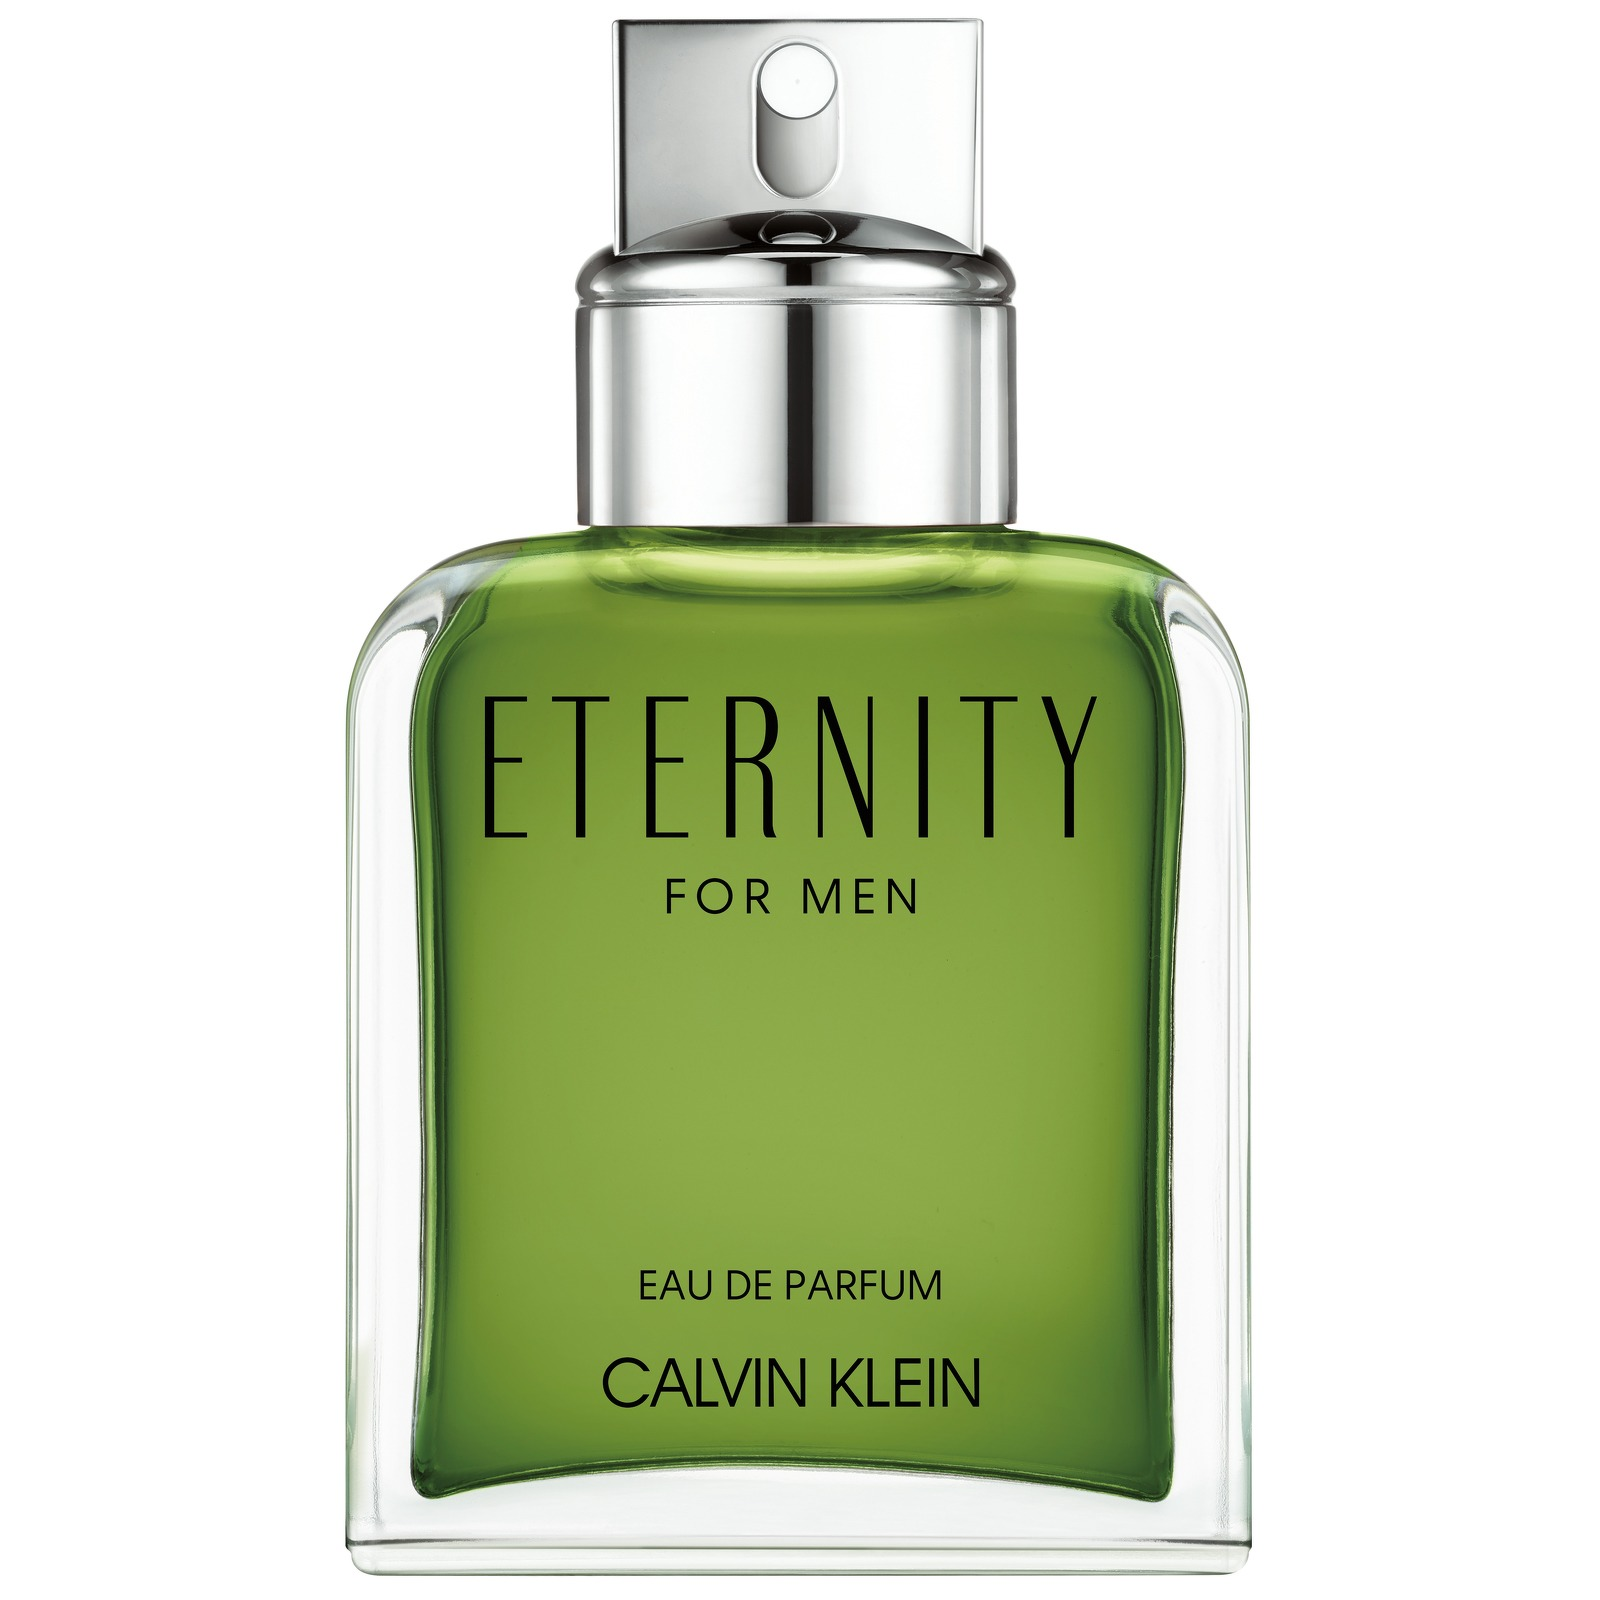 Calvin Klein Eternity For Men Eau de Parfum Spray 100ml